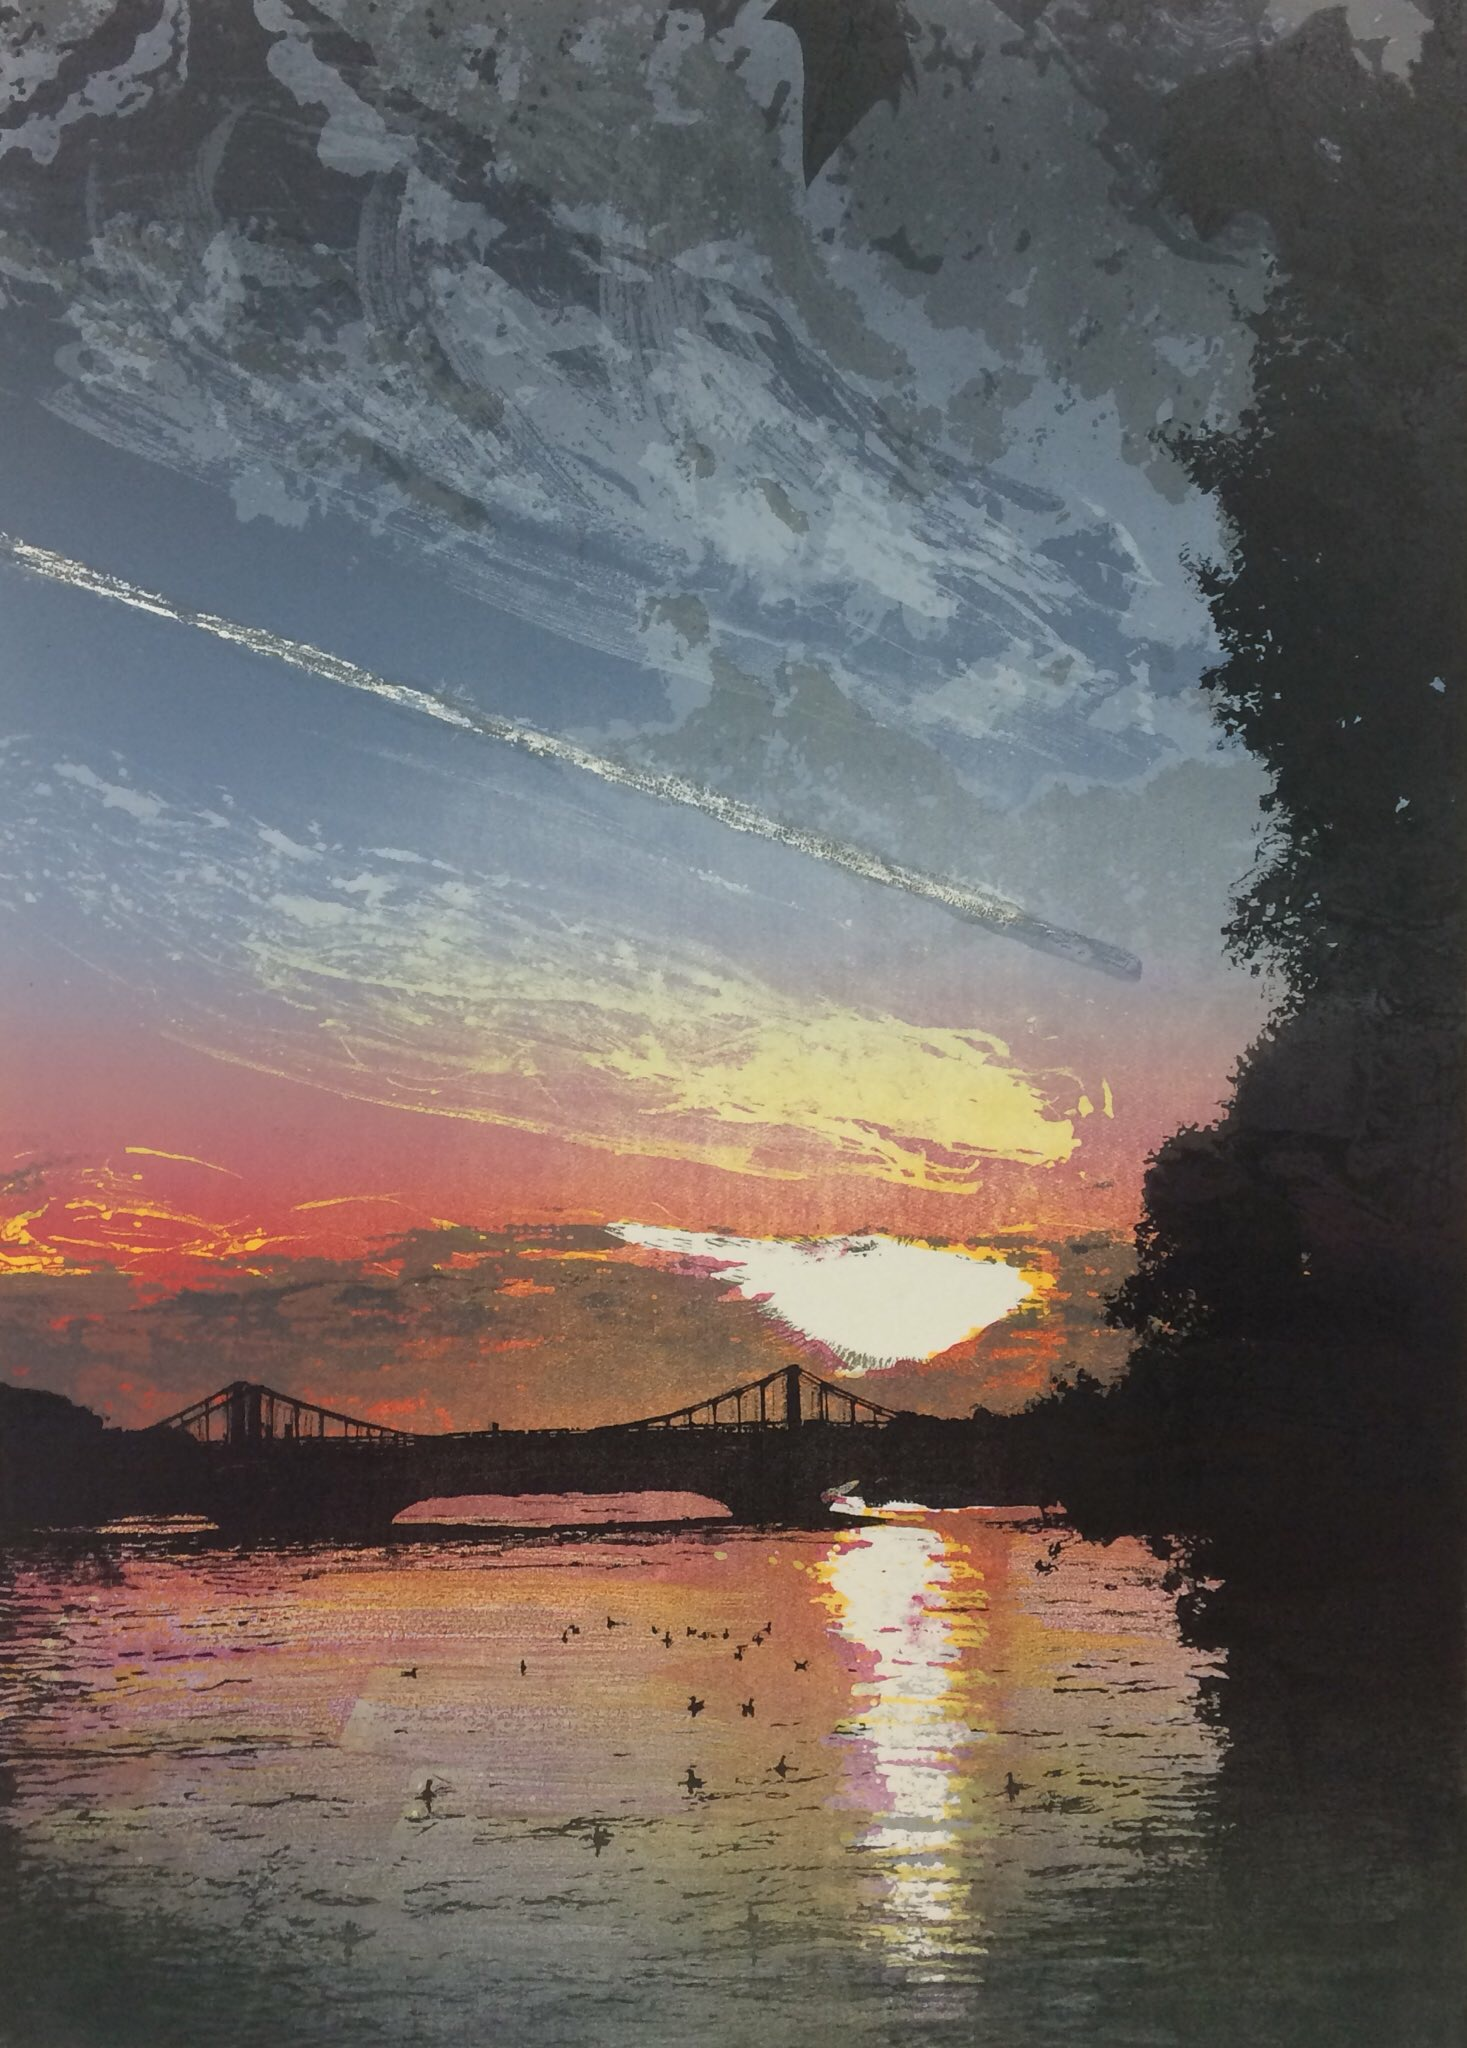 Artwork - Chelsea Bridge - Sunset etched and cut lino Print | Steve Edwards - etched and cut lino